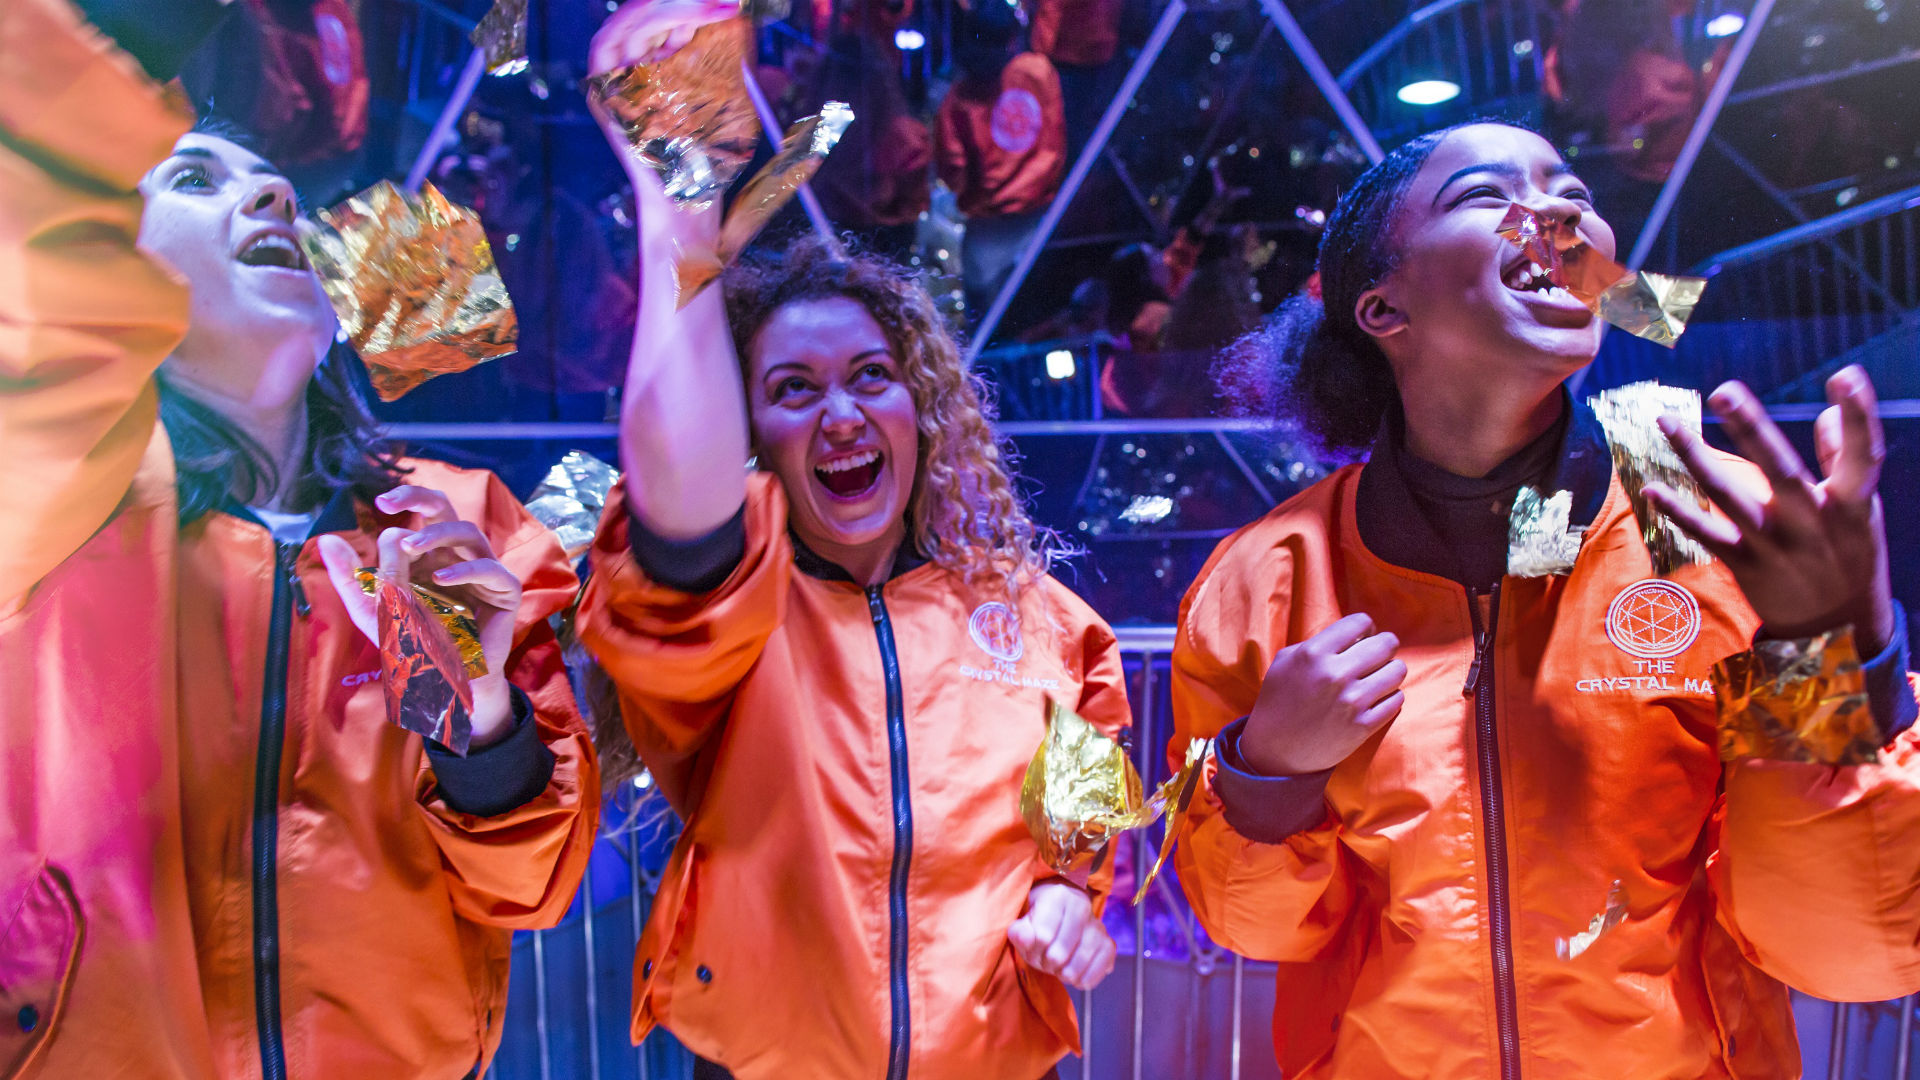 Three people enjoying The Crystal Maze experience